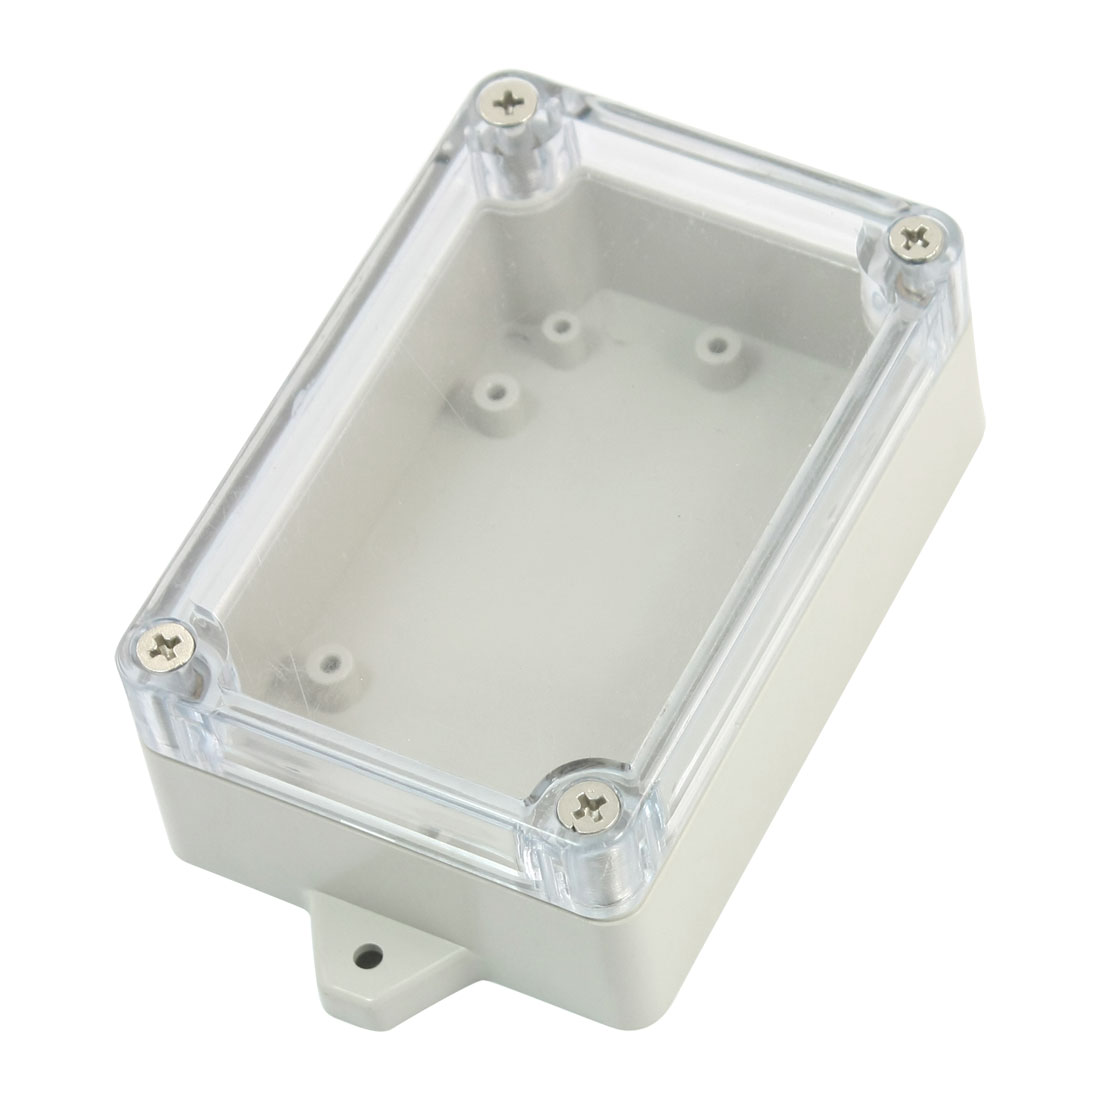 Surface Mount Rectangle Sealed Power Protector DIY Electric Junction Box 100mm x 70mm x 40mm w Clear Cover